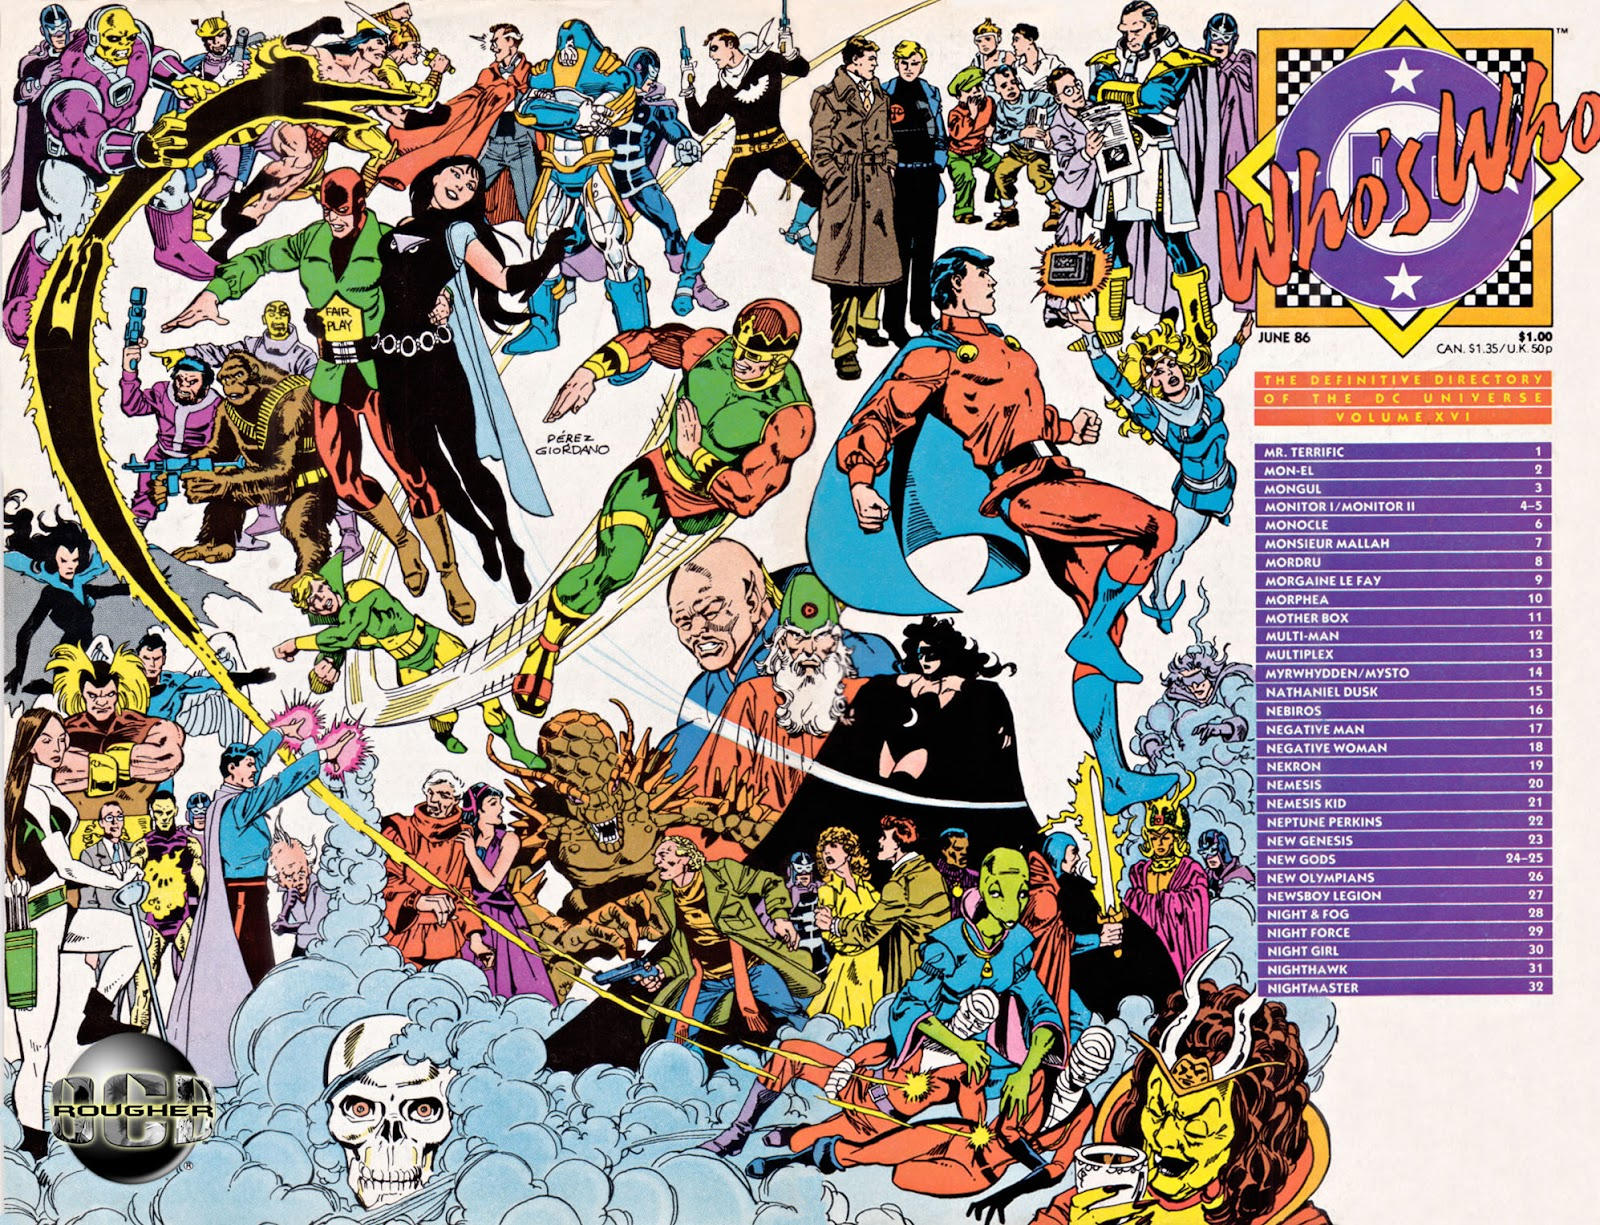 Whos Who: The Definitive Directory of the DC Universe 16 Page 1